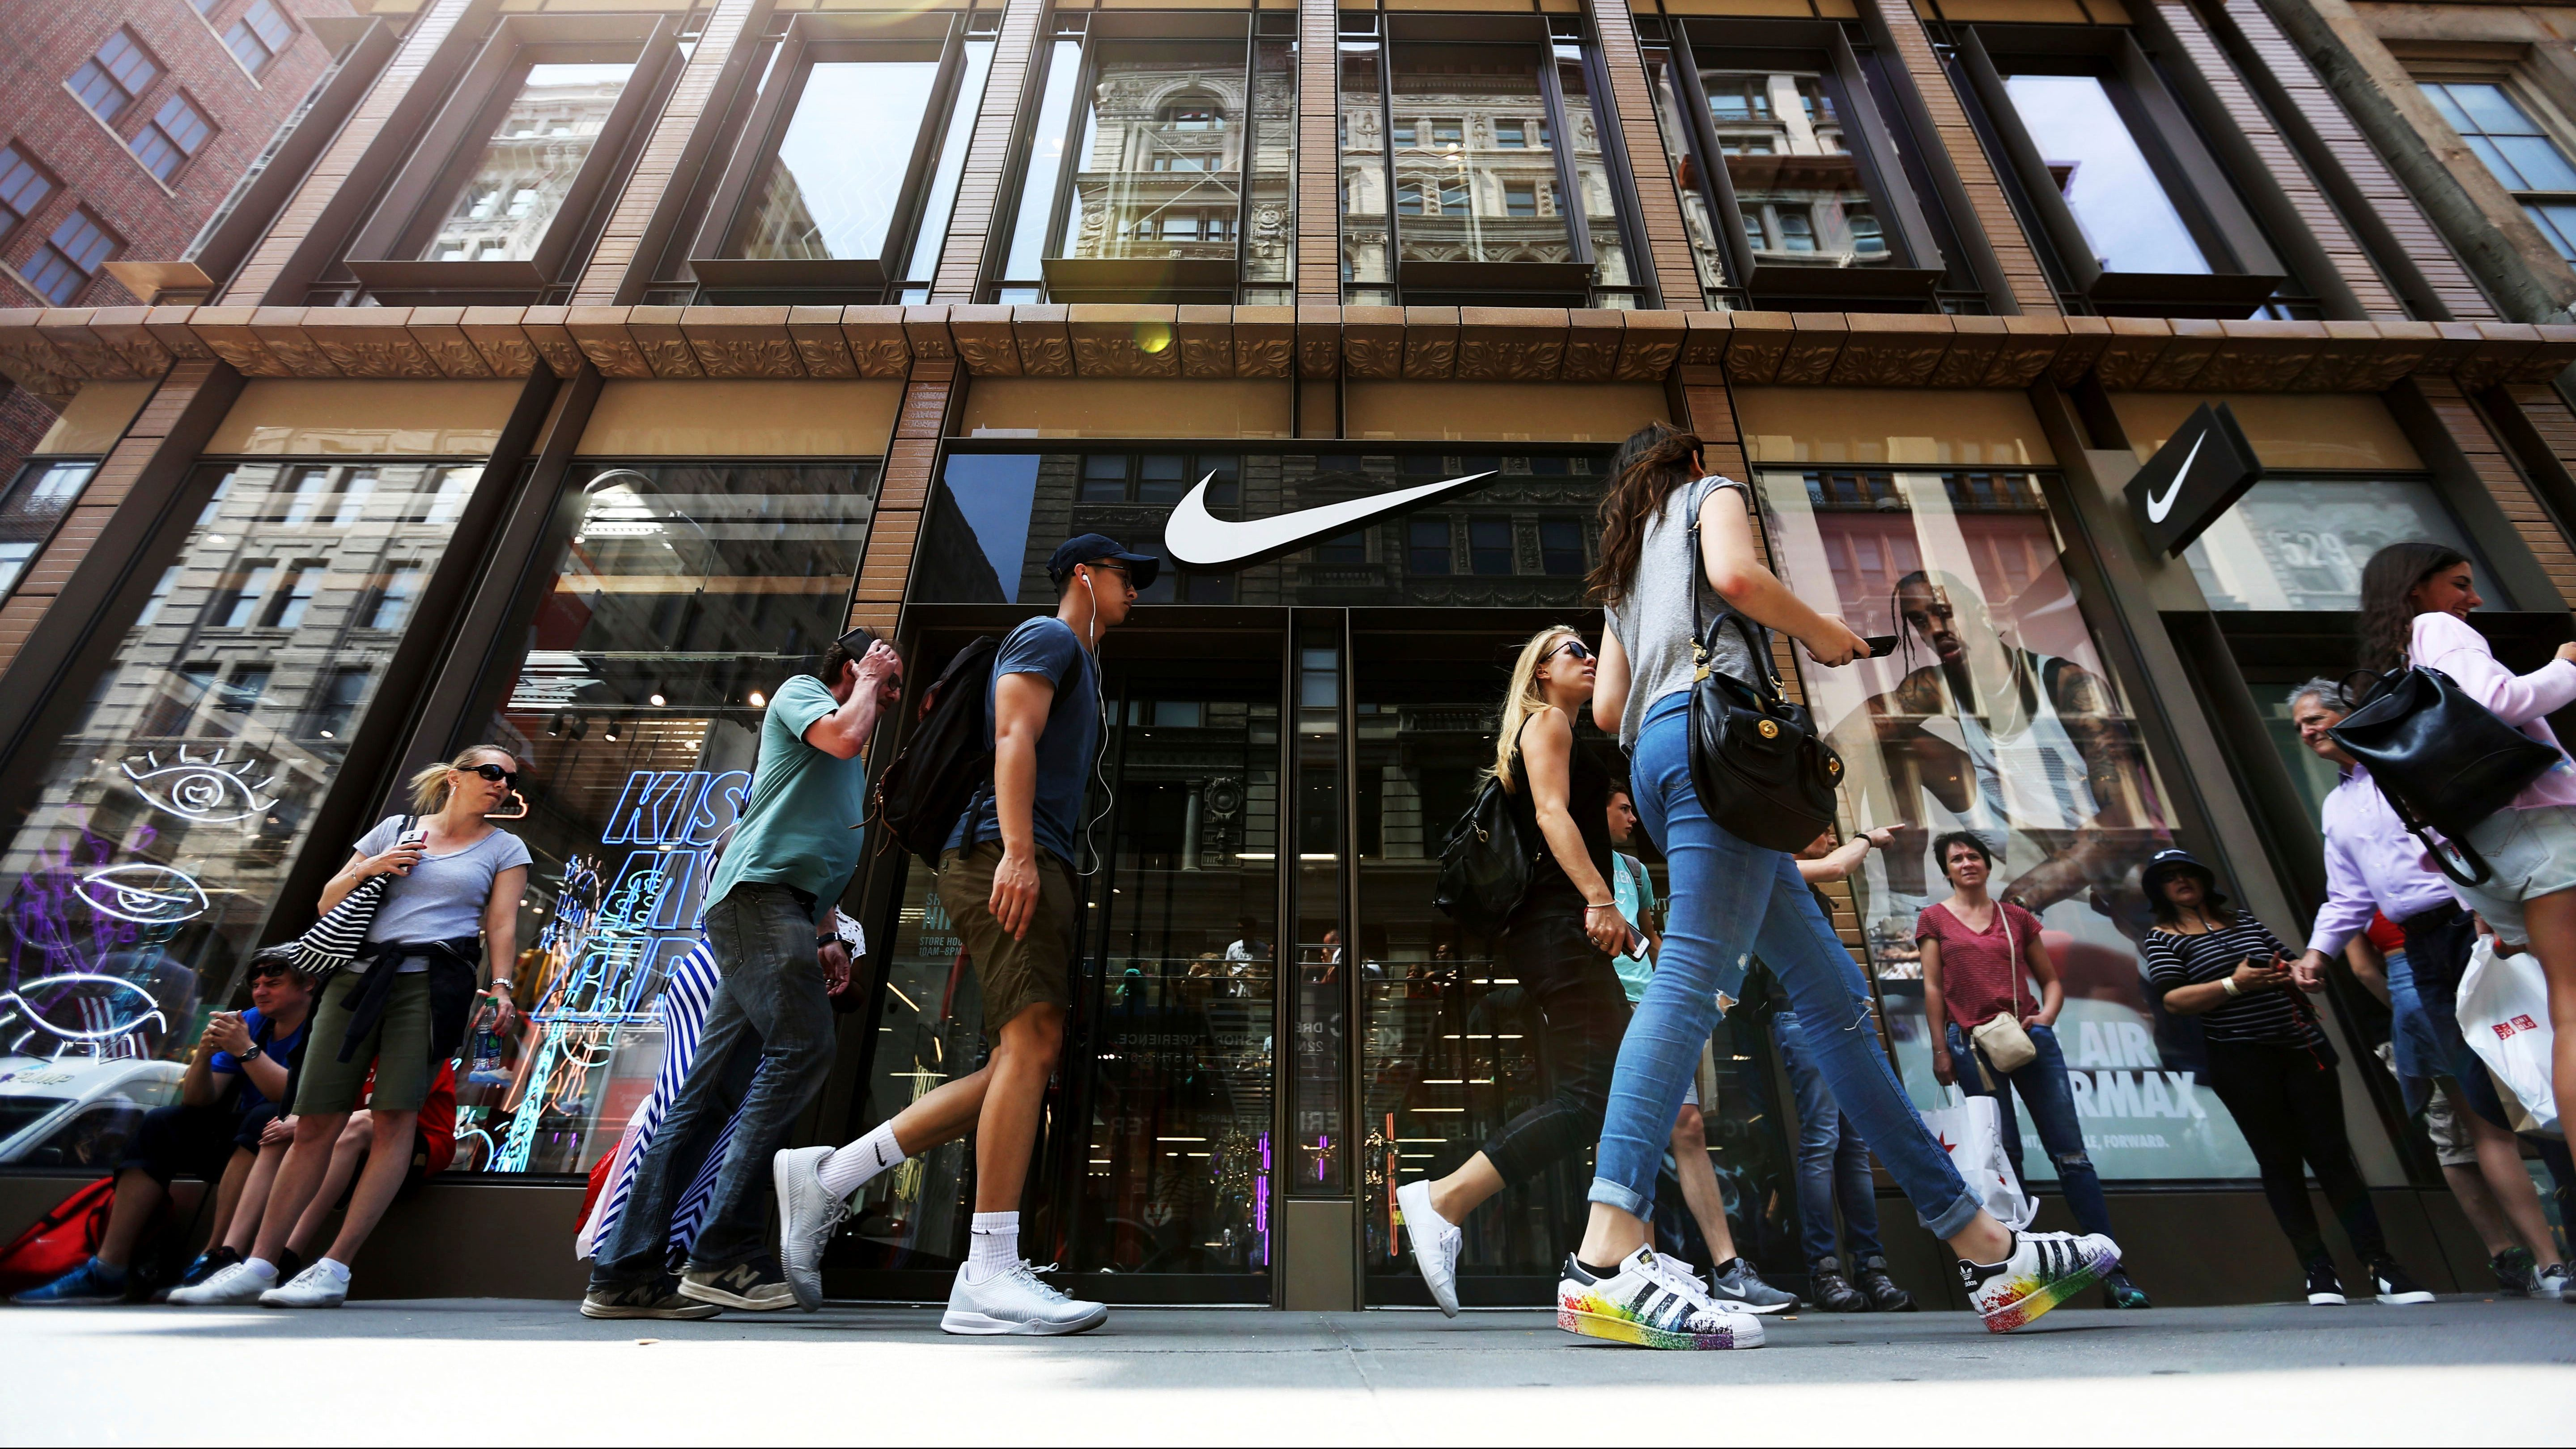 5bbc776c4c0 Nike is losing popularity to Adidas and Vans among teens